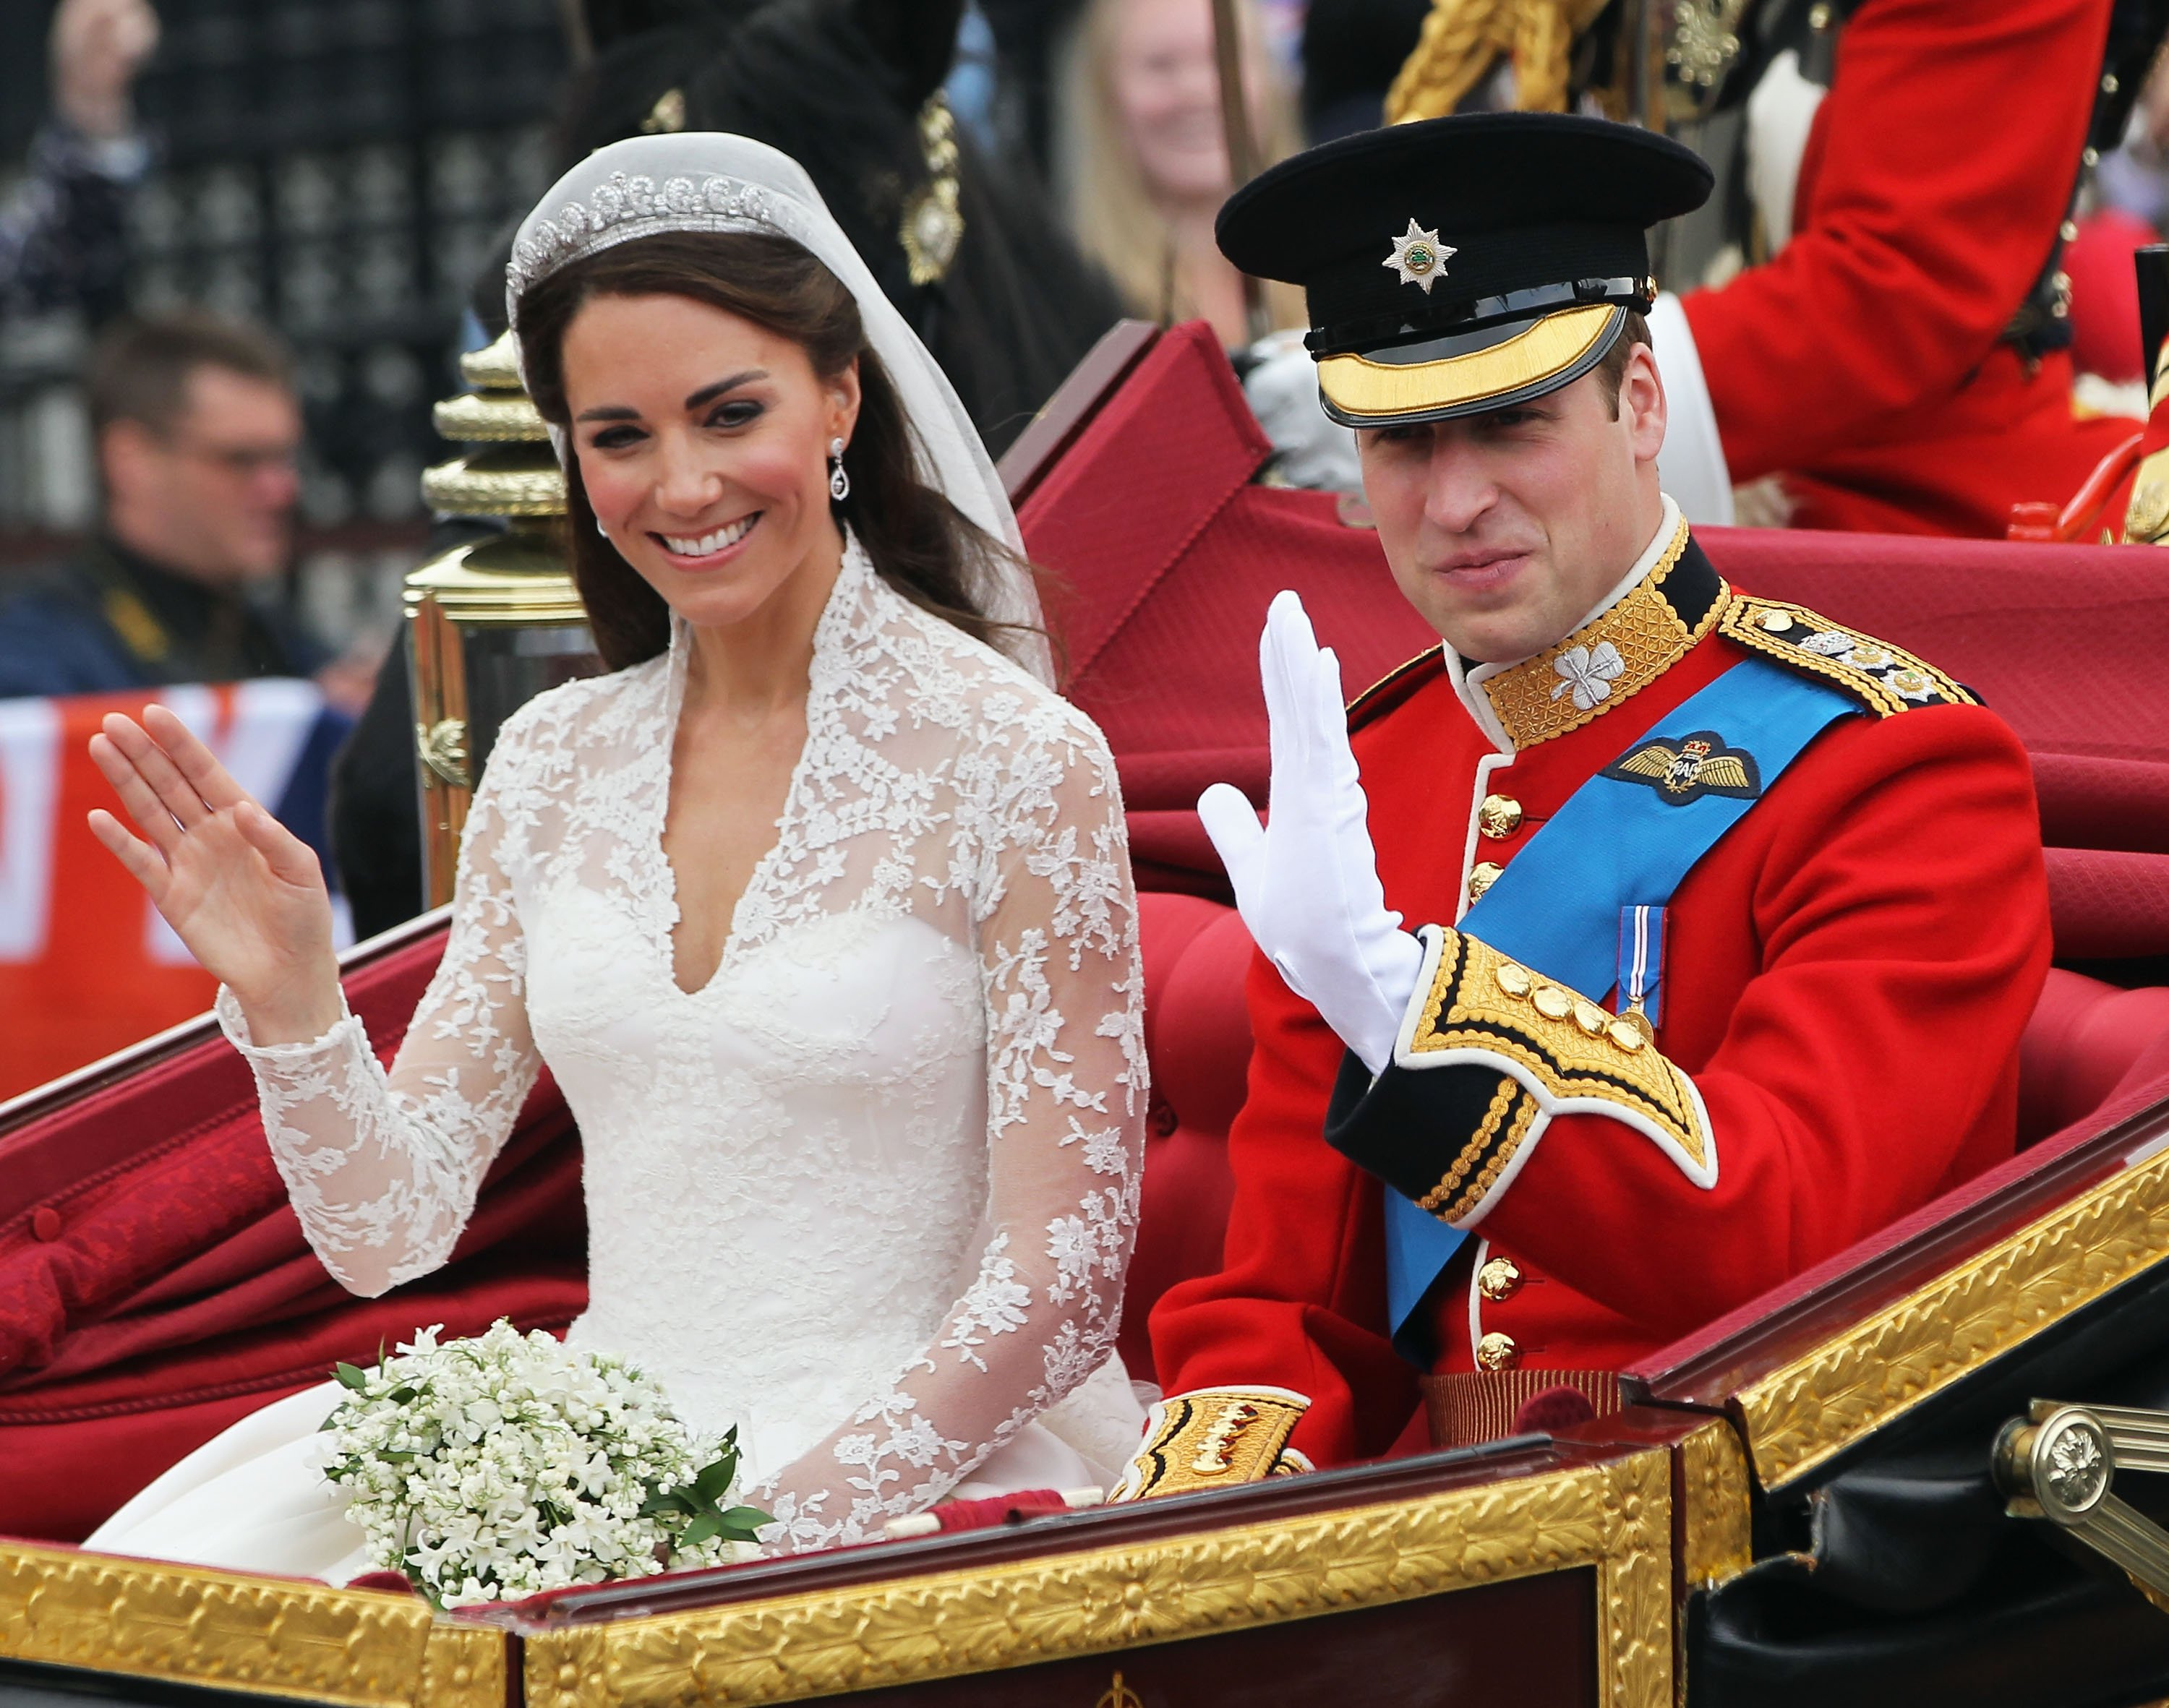 Kate Middleton and Prince William pictured on their wedding day, traveling in a carriage following the ceremony at Westminster Abbey. 2011, London, England. | Photo Getty Images